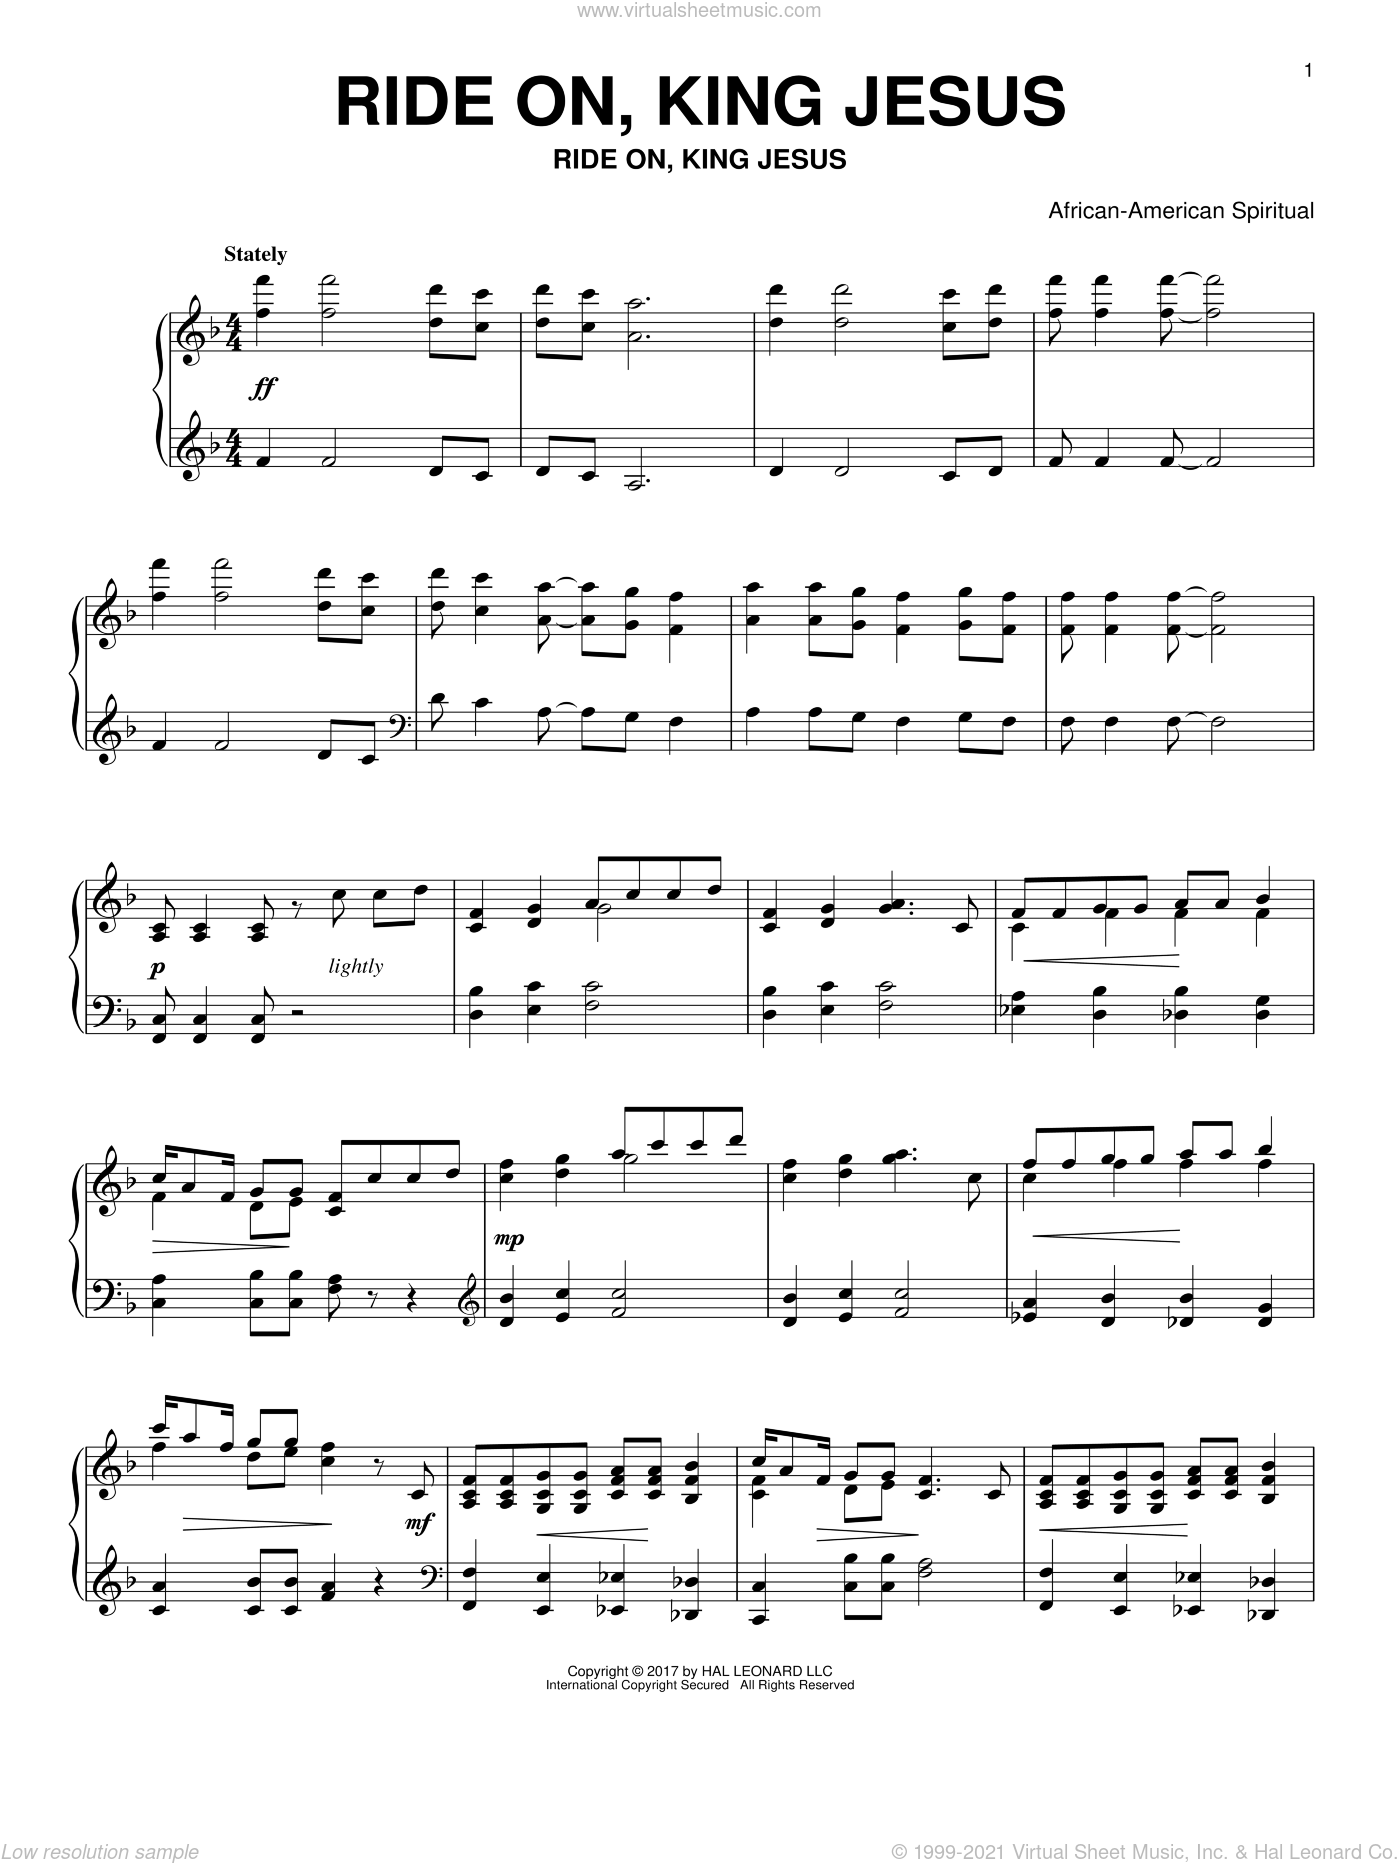 Ride On, King Jesus sheet music for piano solo by Kurt Kaiser and Miscellaneous, intermediate skill level